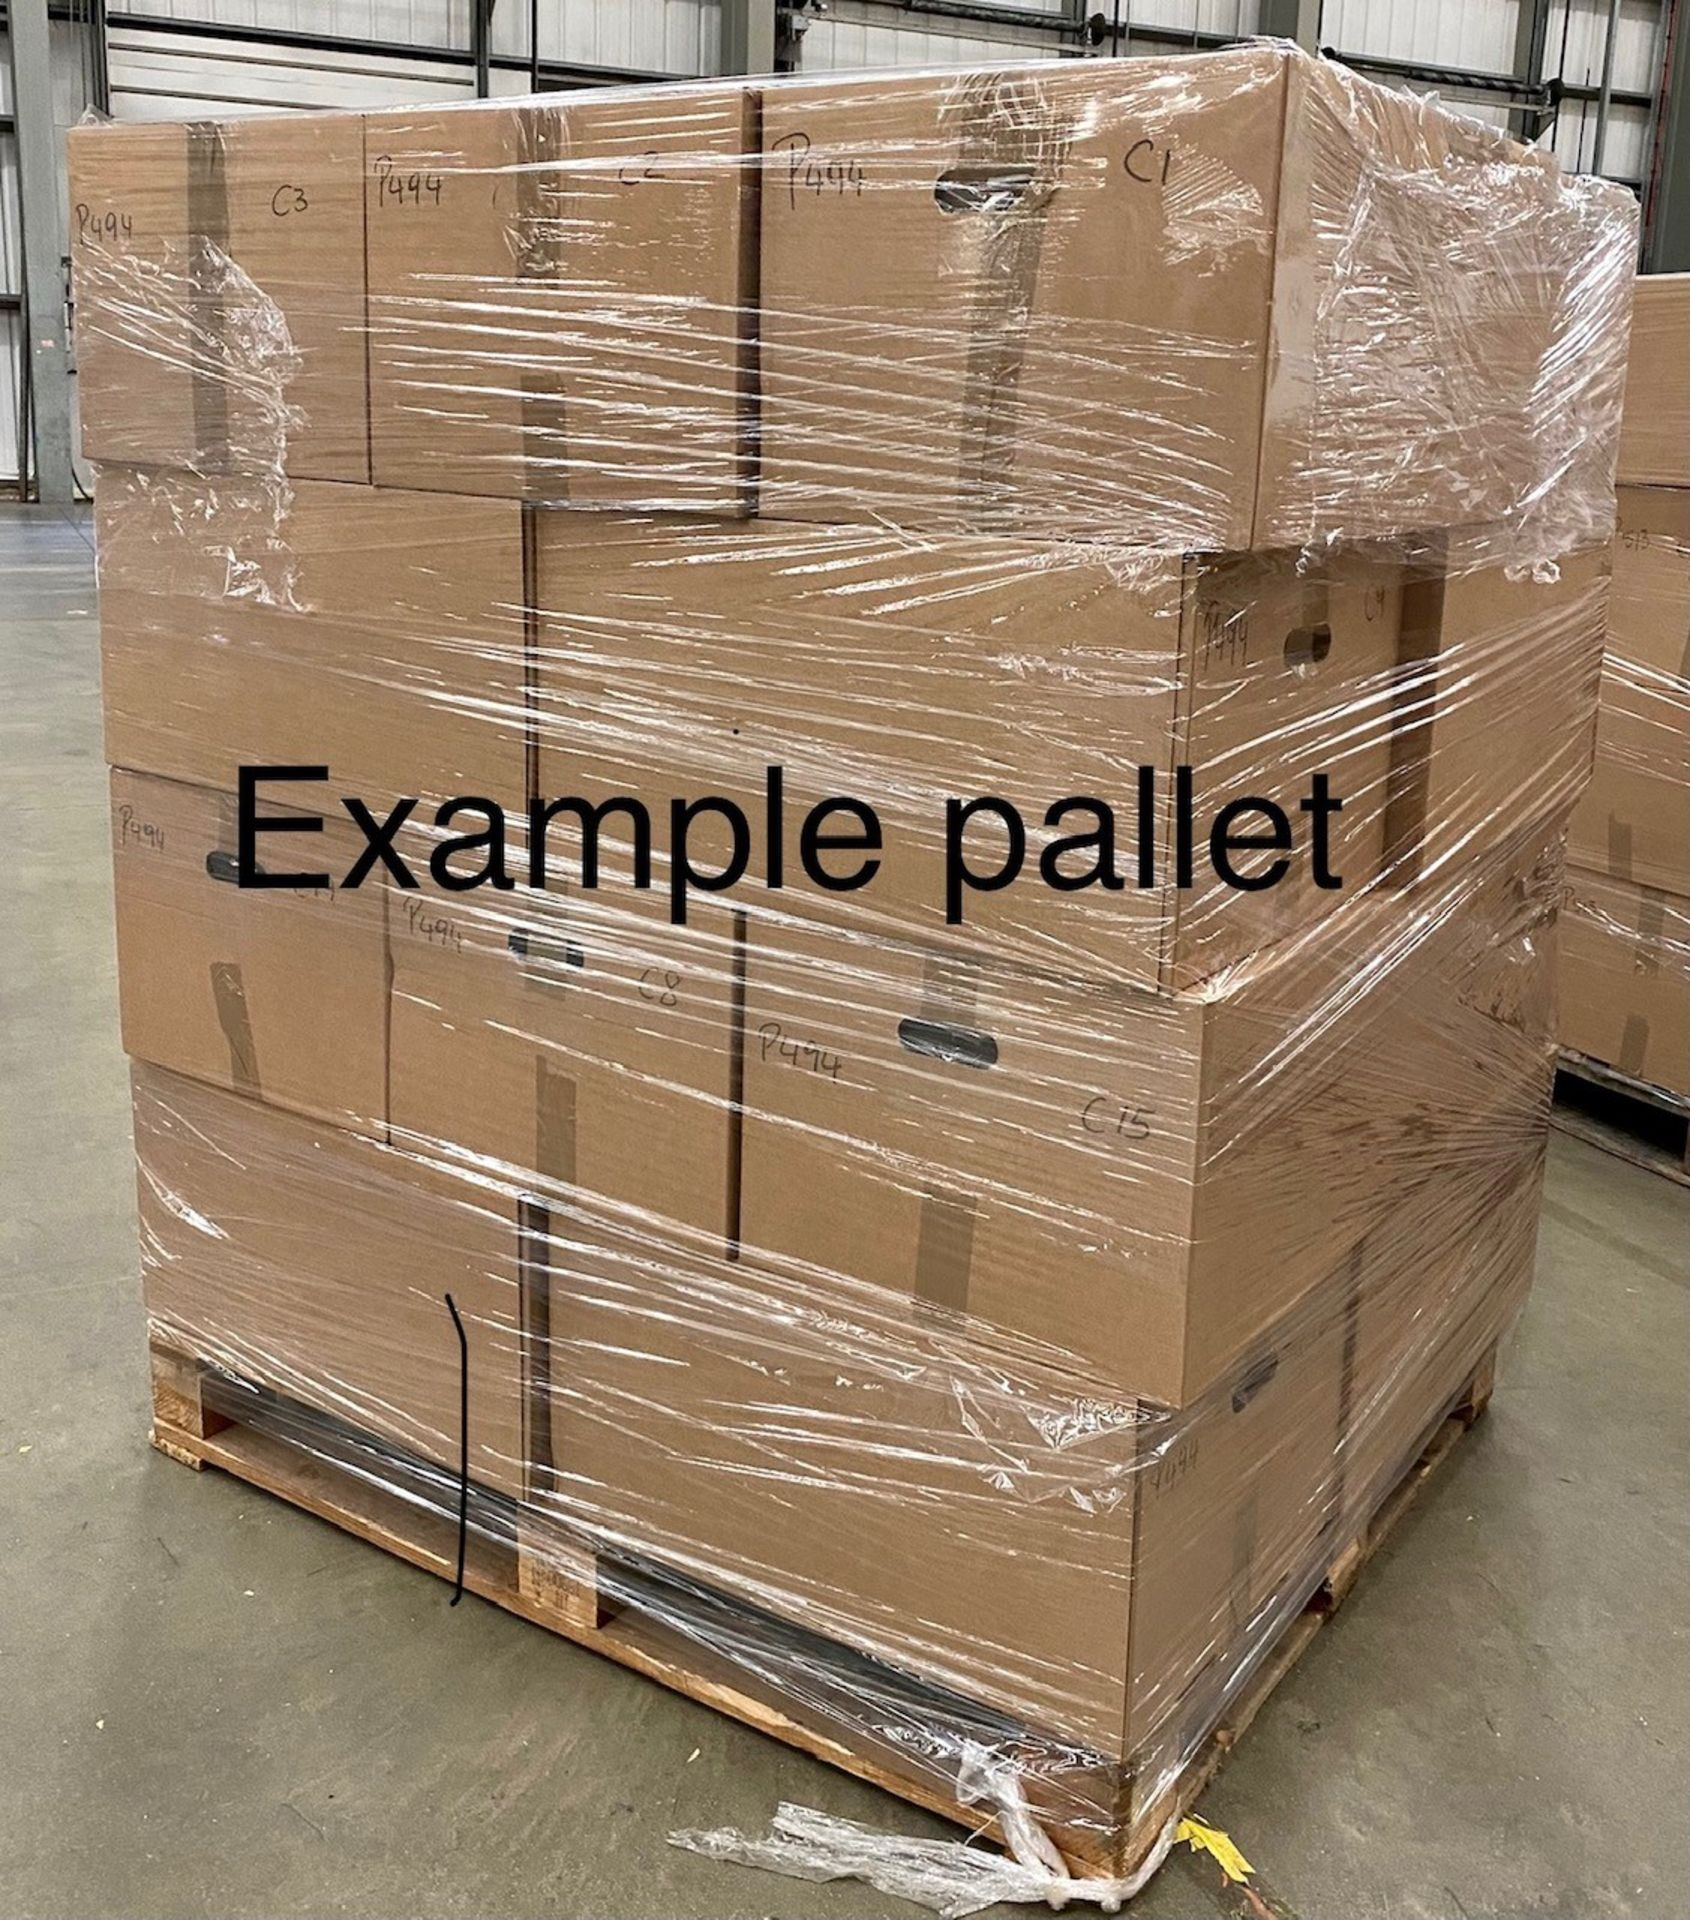 1 x mixed pallet = 331 items of Grade A M&S Womenswear Clothing. Total RRP £3966.50 - Image 5 of 6